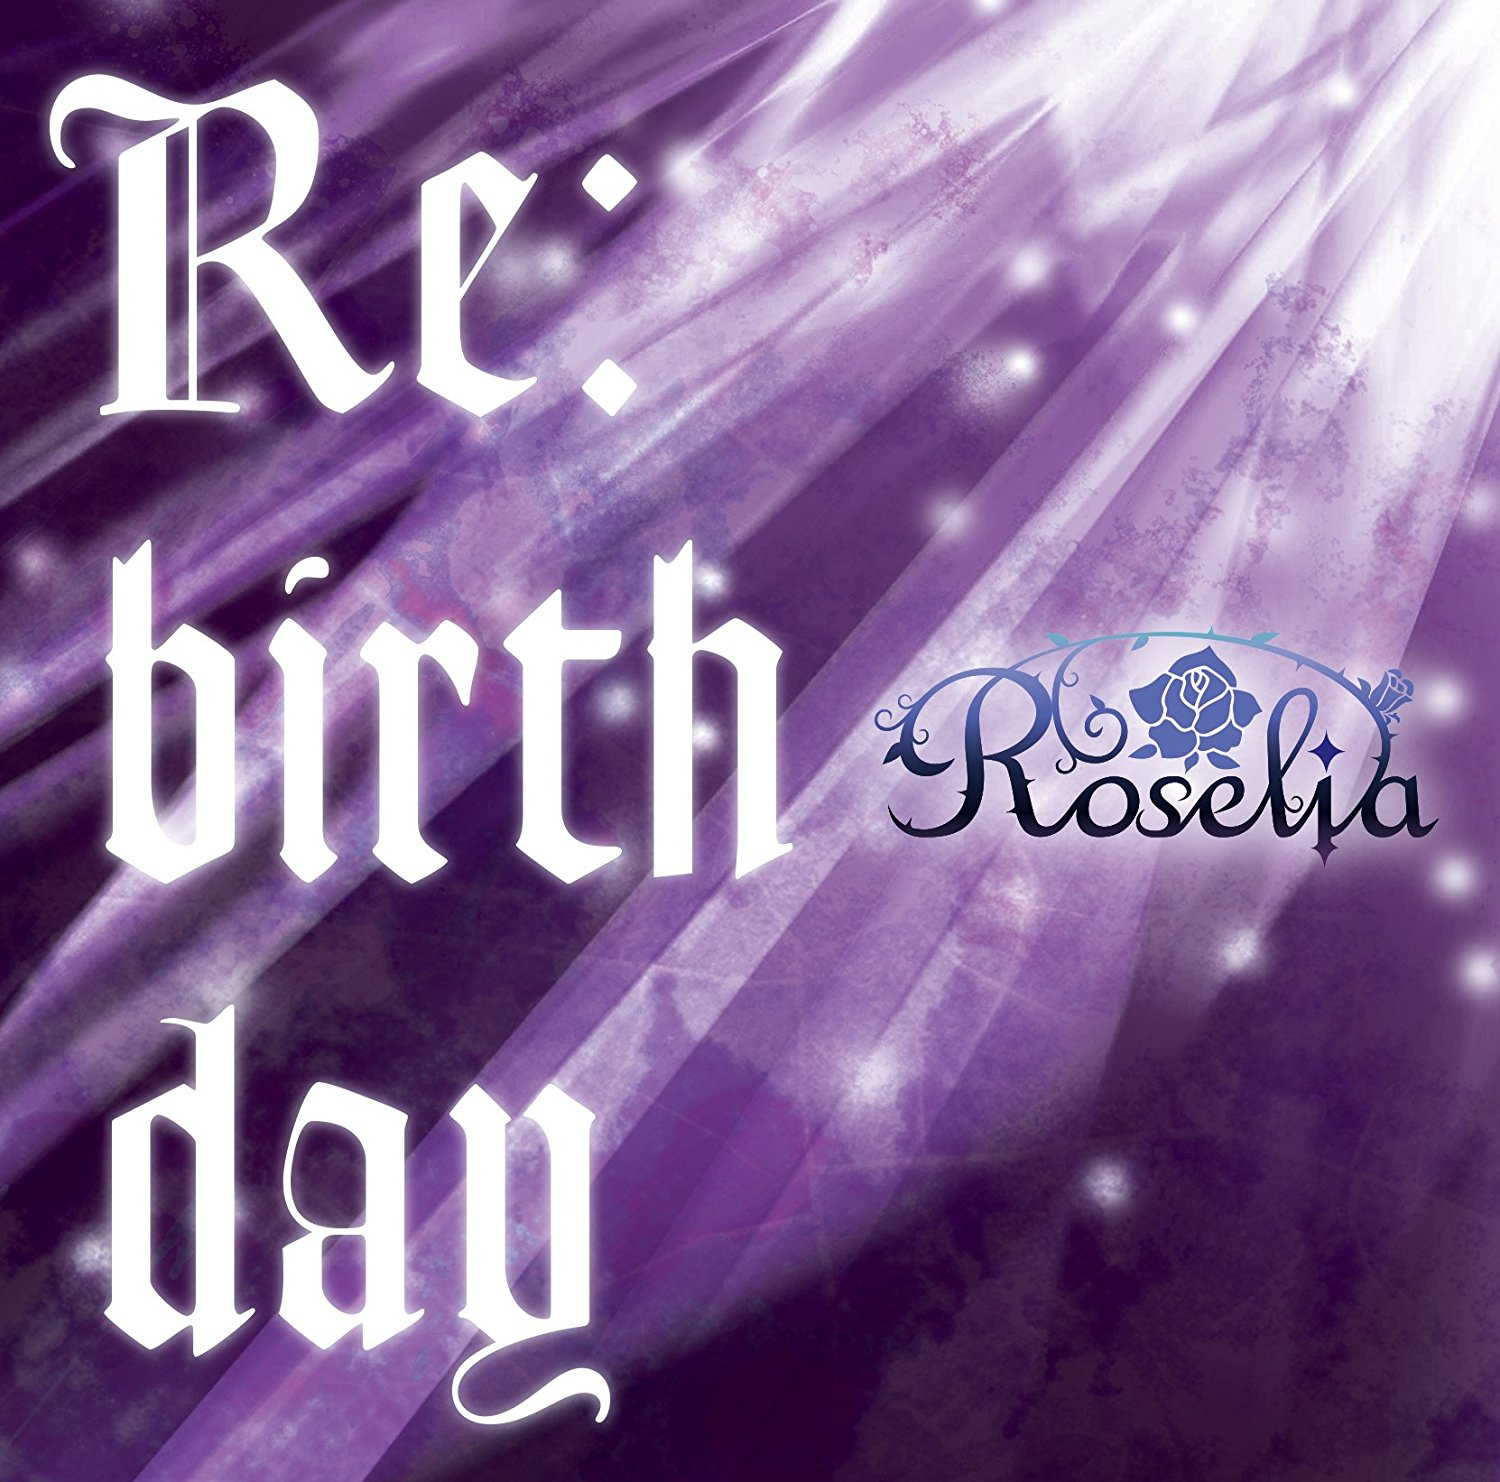 BanG Dream!: Roselia – Re:birth day